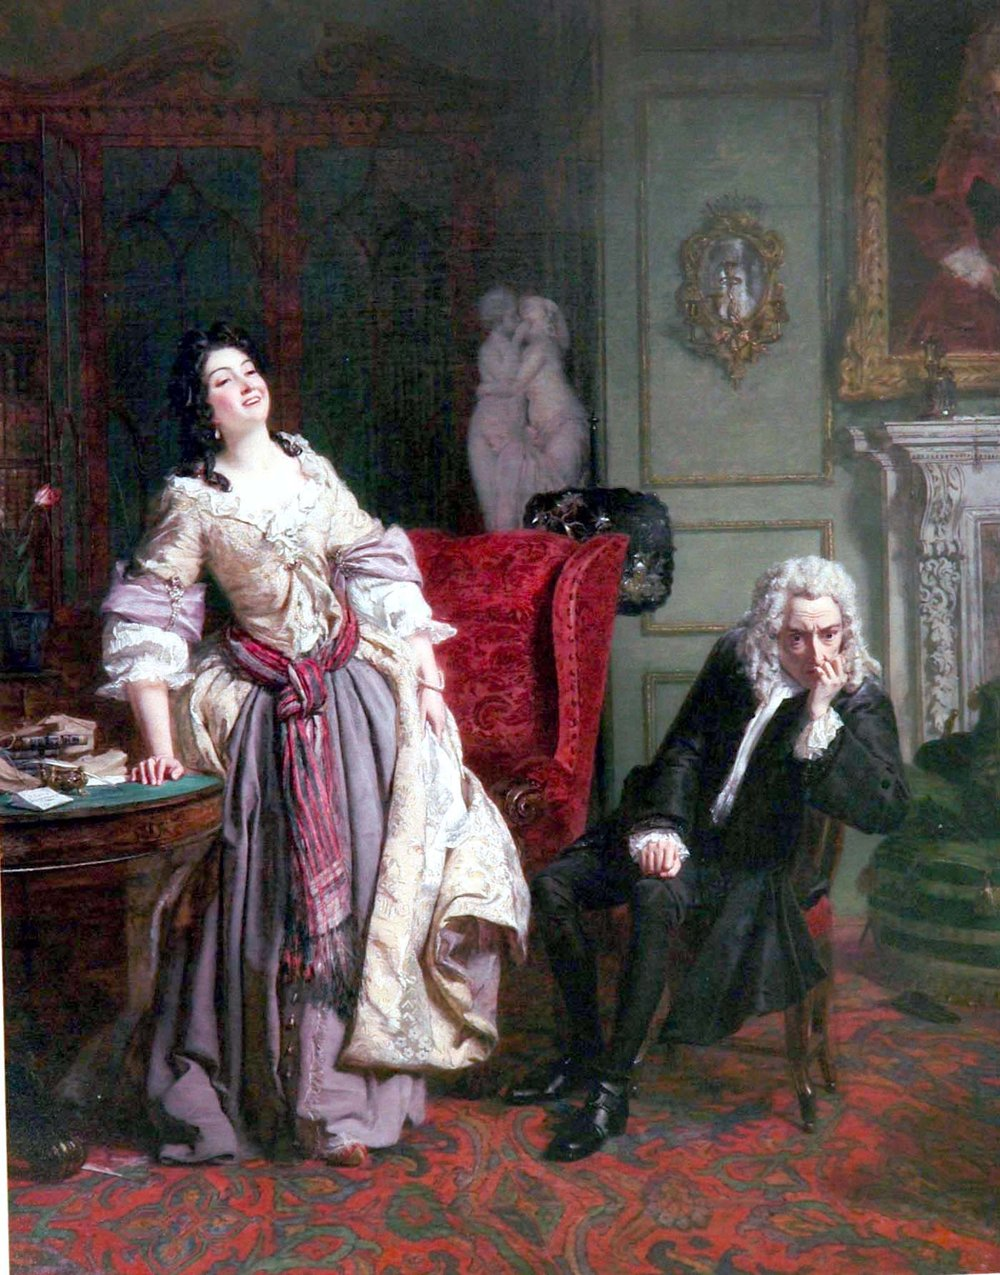 William Powell Frith,  Pope makes love to Lady Mary Montague, 1851, oil on canvas,Aukland City Art Gallery, New Zealand.   https://commons.wikimedia.org/wiki/File:18firth_Pope.jpg